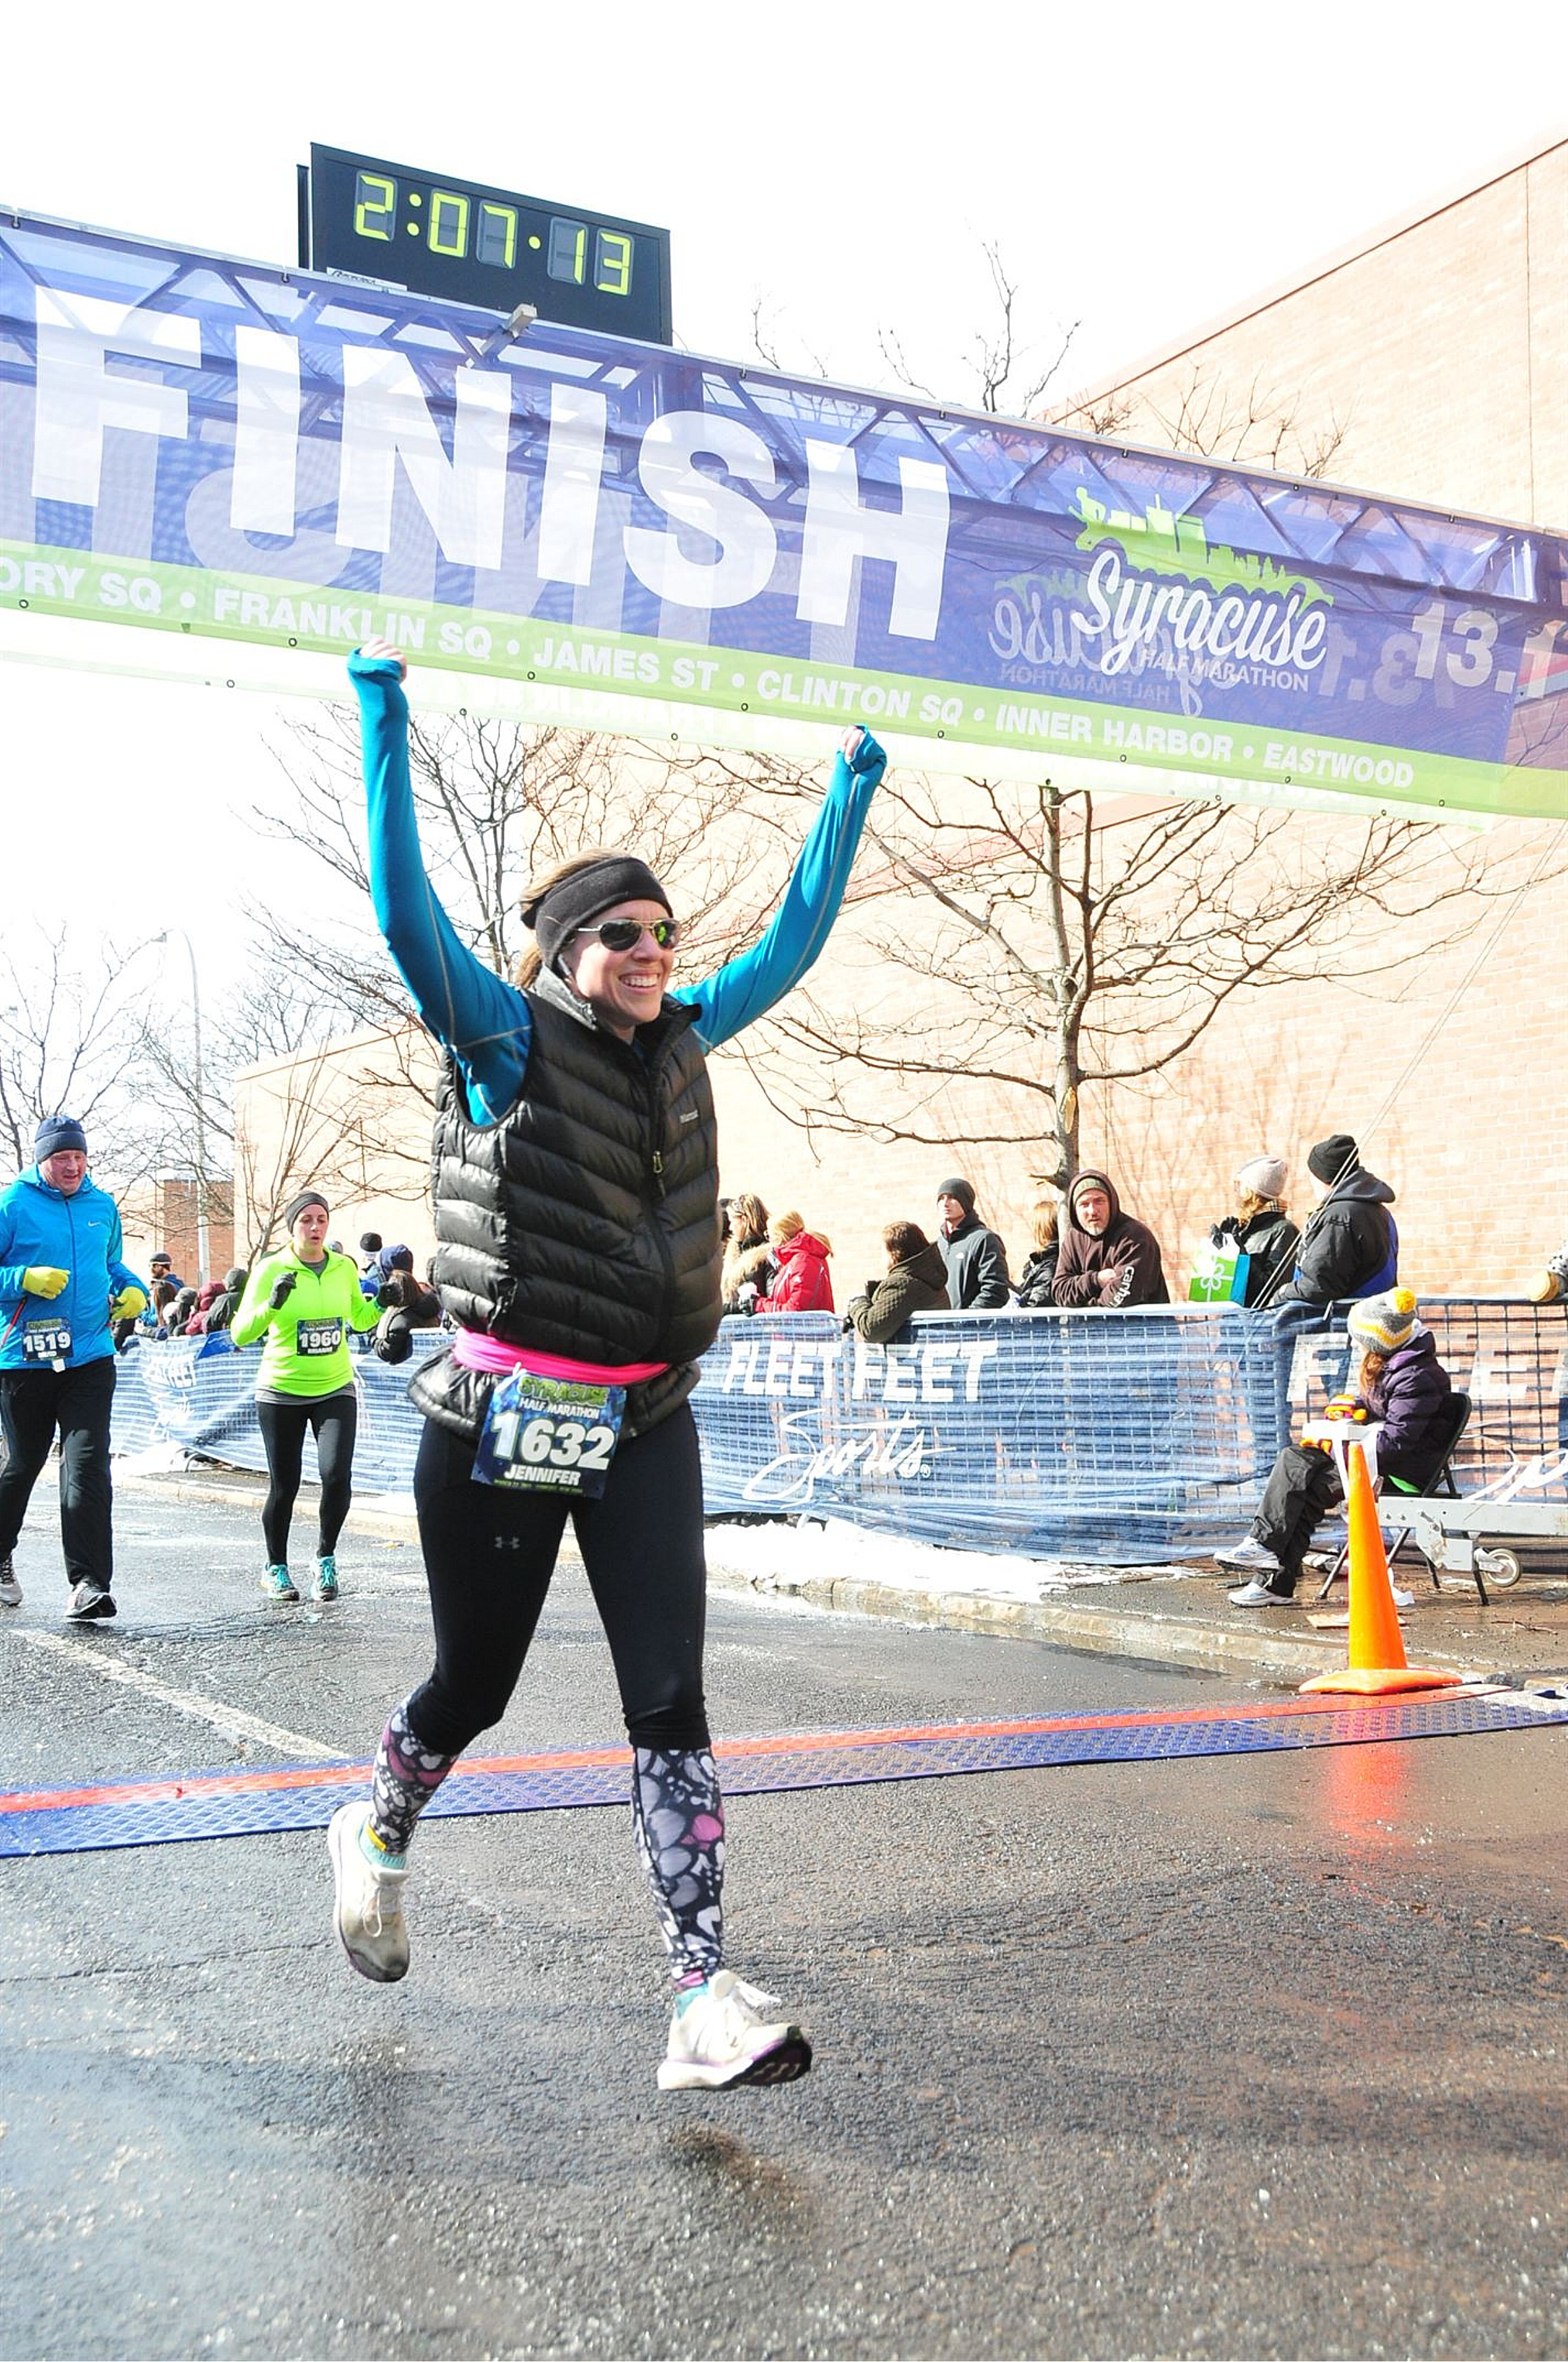 Crossing the finish line of the Syracuse Half Marathon with an official time of 2:05:45 - better than the goal time I trained for!